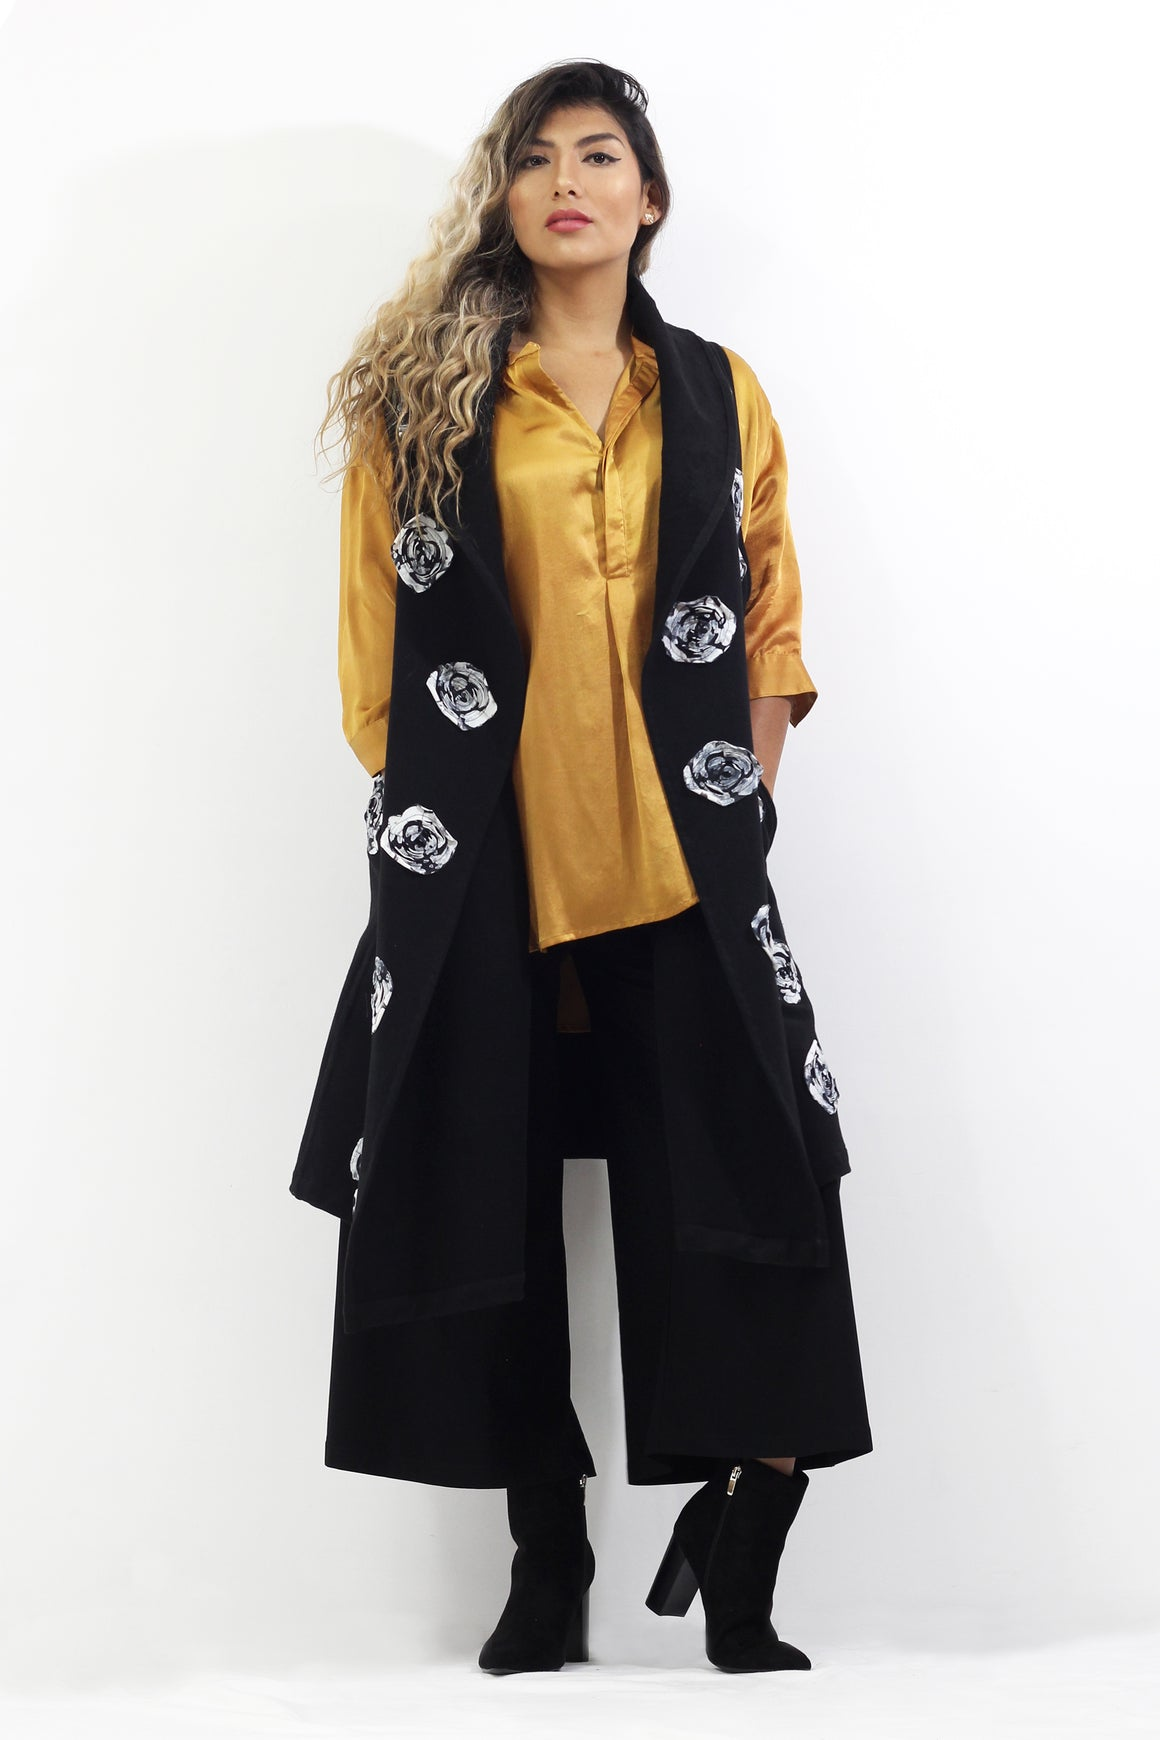 Frenchish Soie - Appliqué Vest, Silk Blouse and Palazzo Crops - Separates